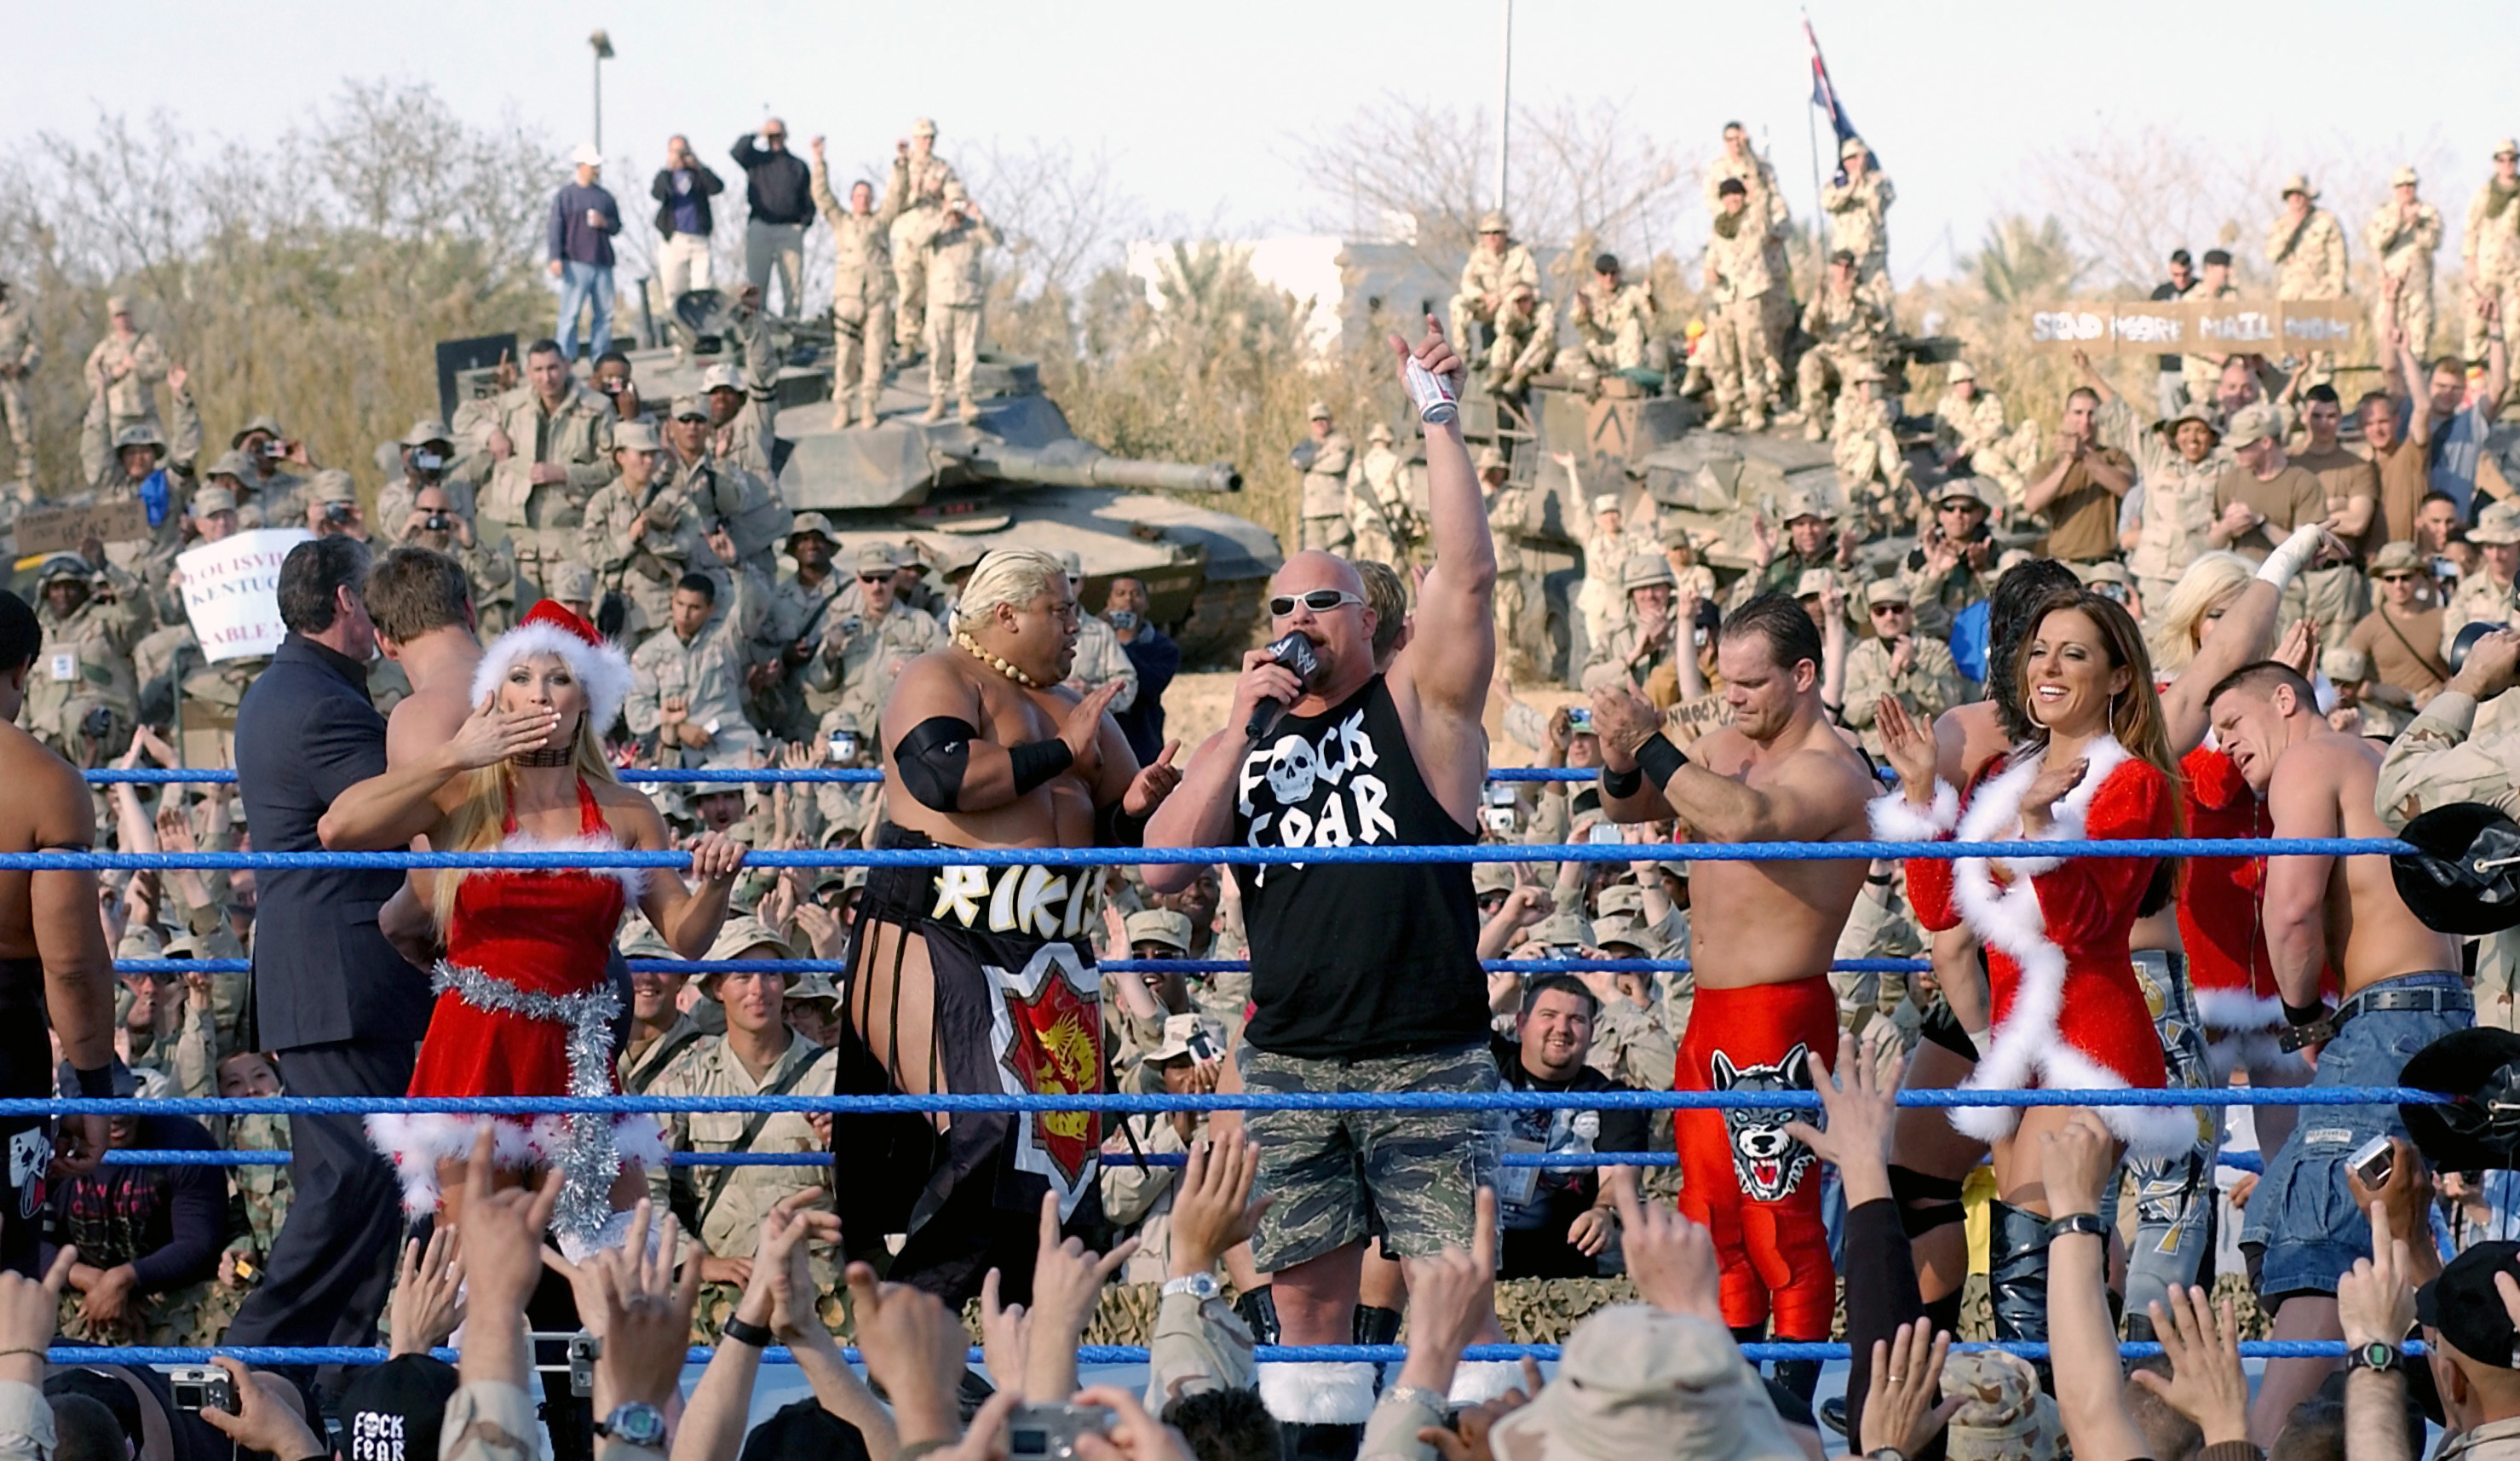 WWE has aired an annual Tribute to the Troops for U.S. soldiers in Iraq since 2003